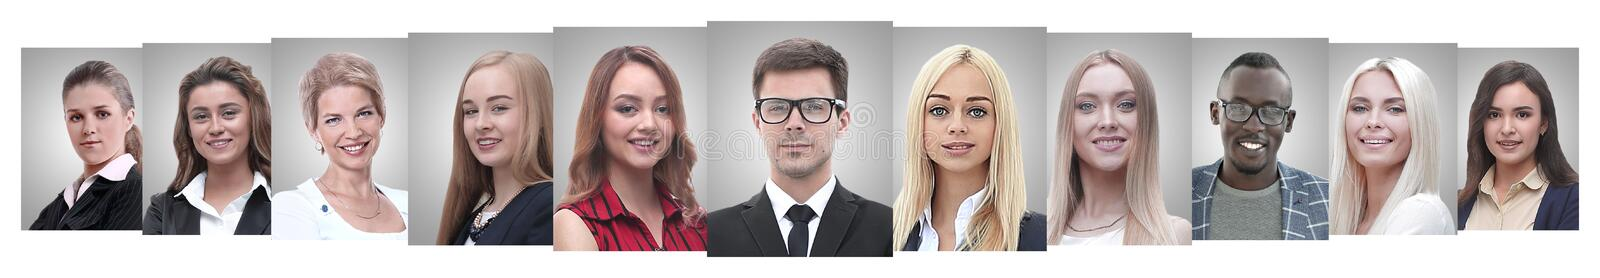 Panoramic collage of portraits of successful business people. Business concept royalty free stock image